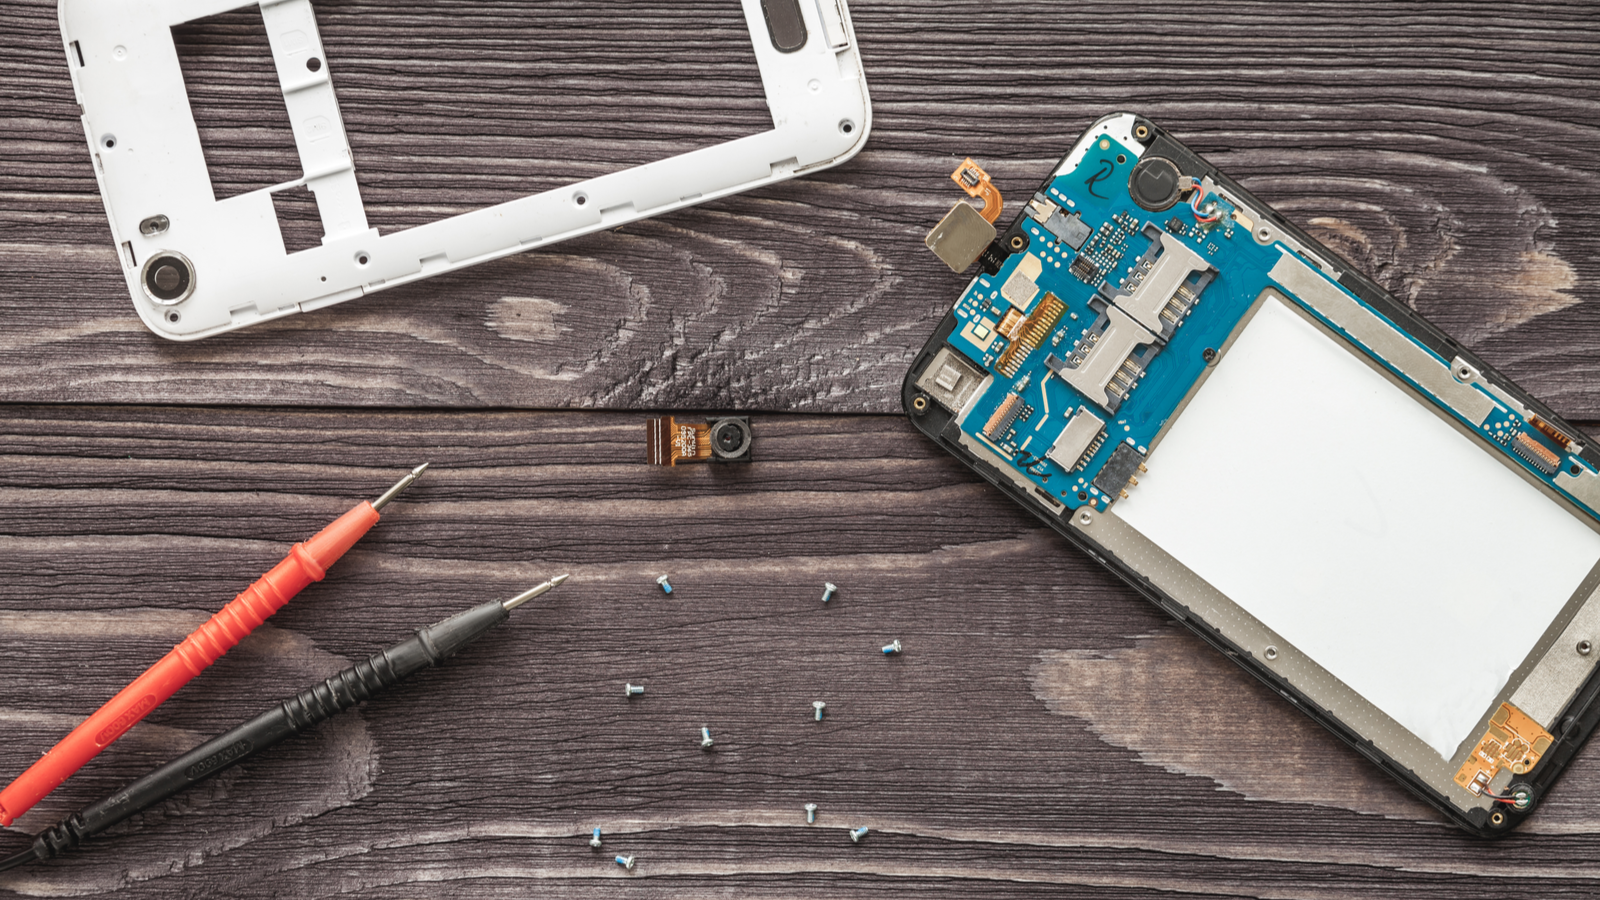 Mobile phone repair, shot of interior of phone next to exterior case on wooden planks